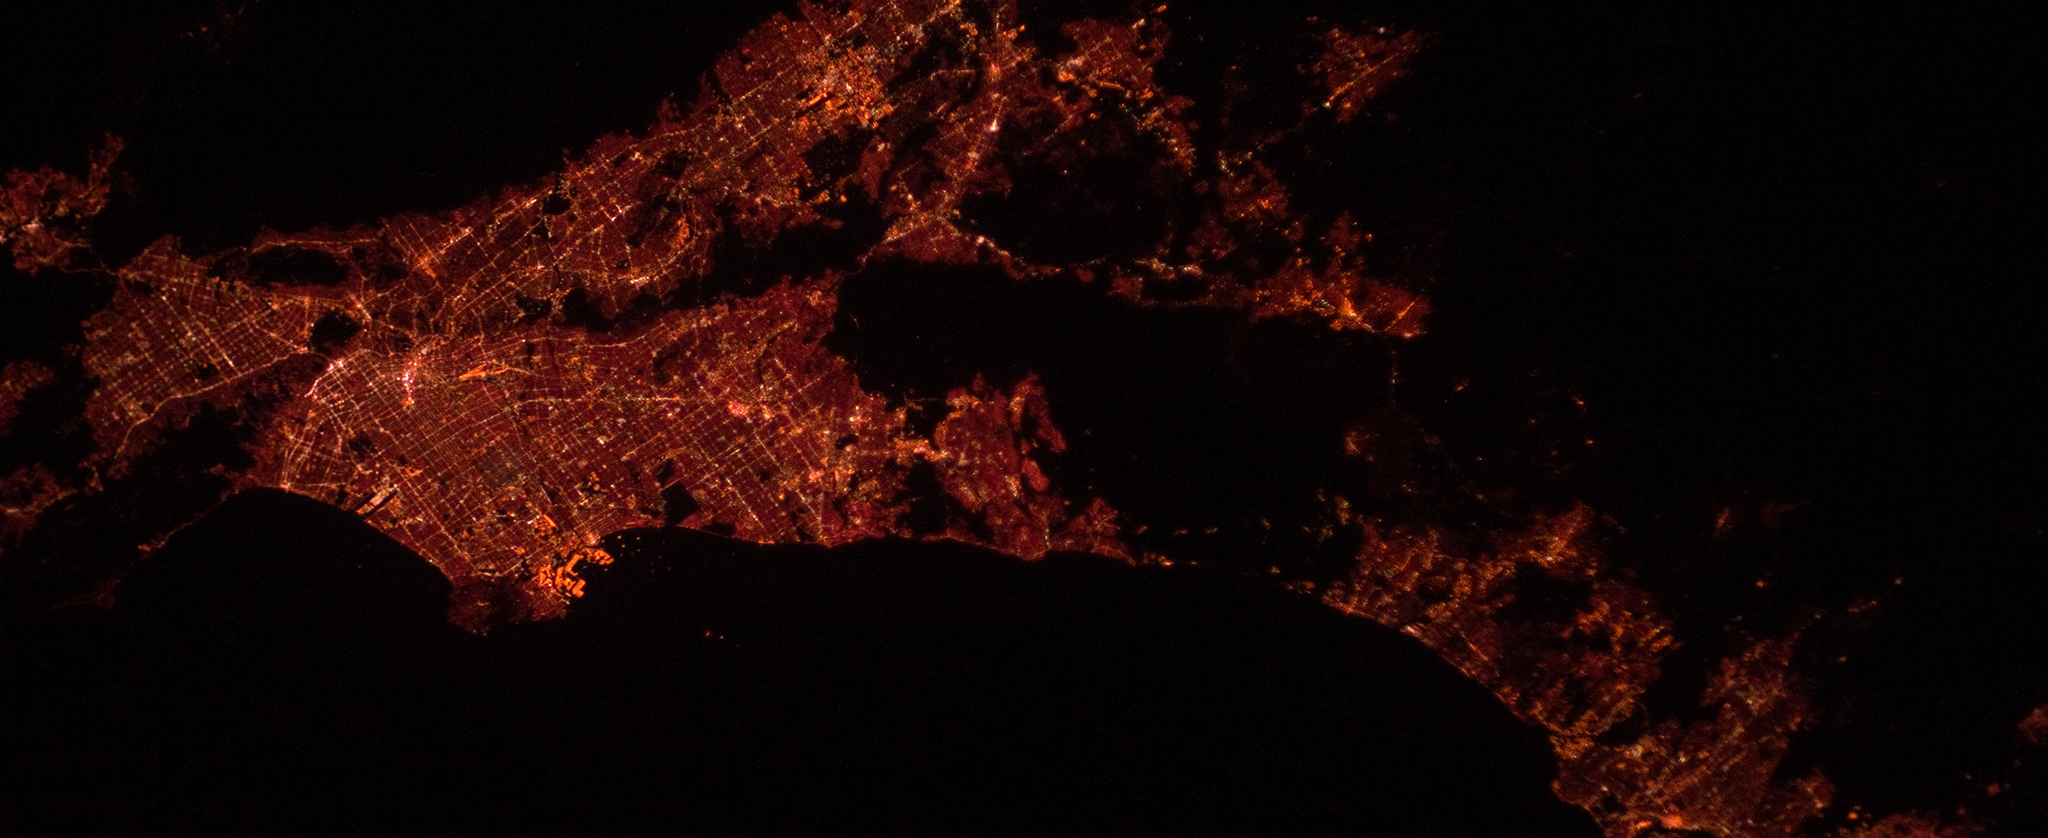 Los Angeles Area at Night from NASA's Marshall Space Flight Center